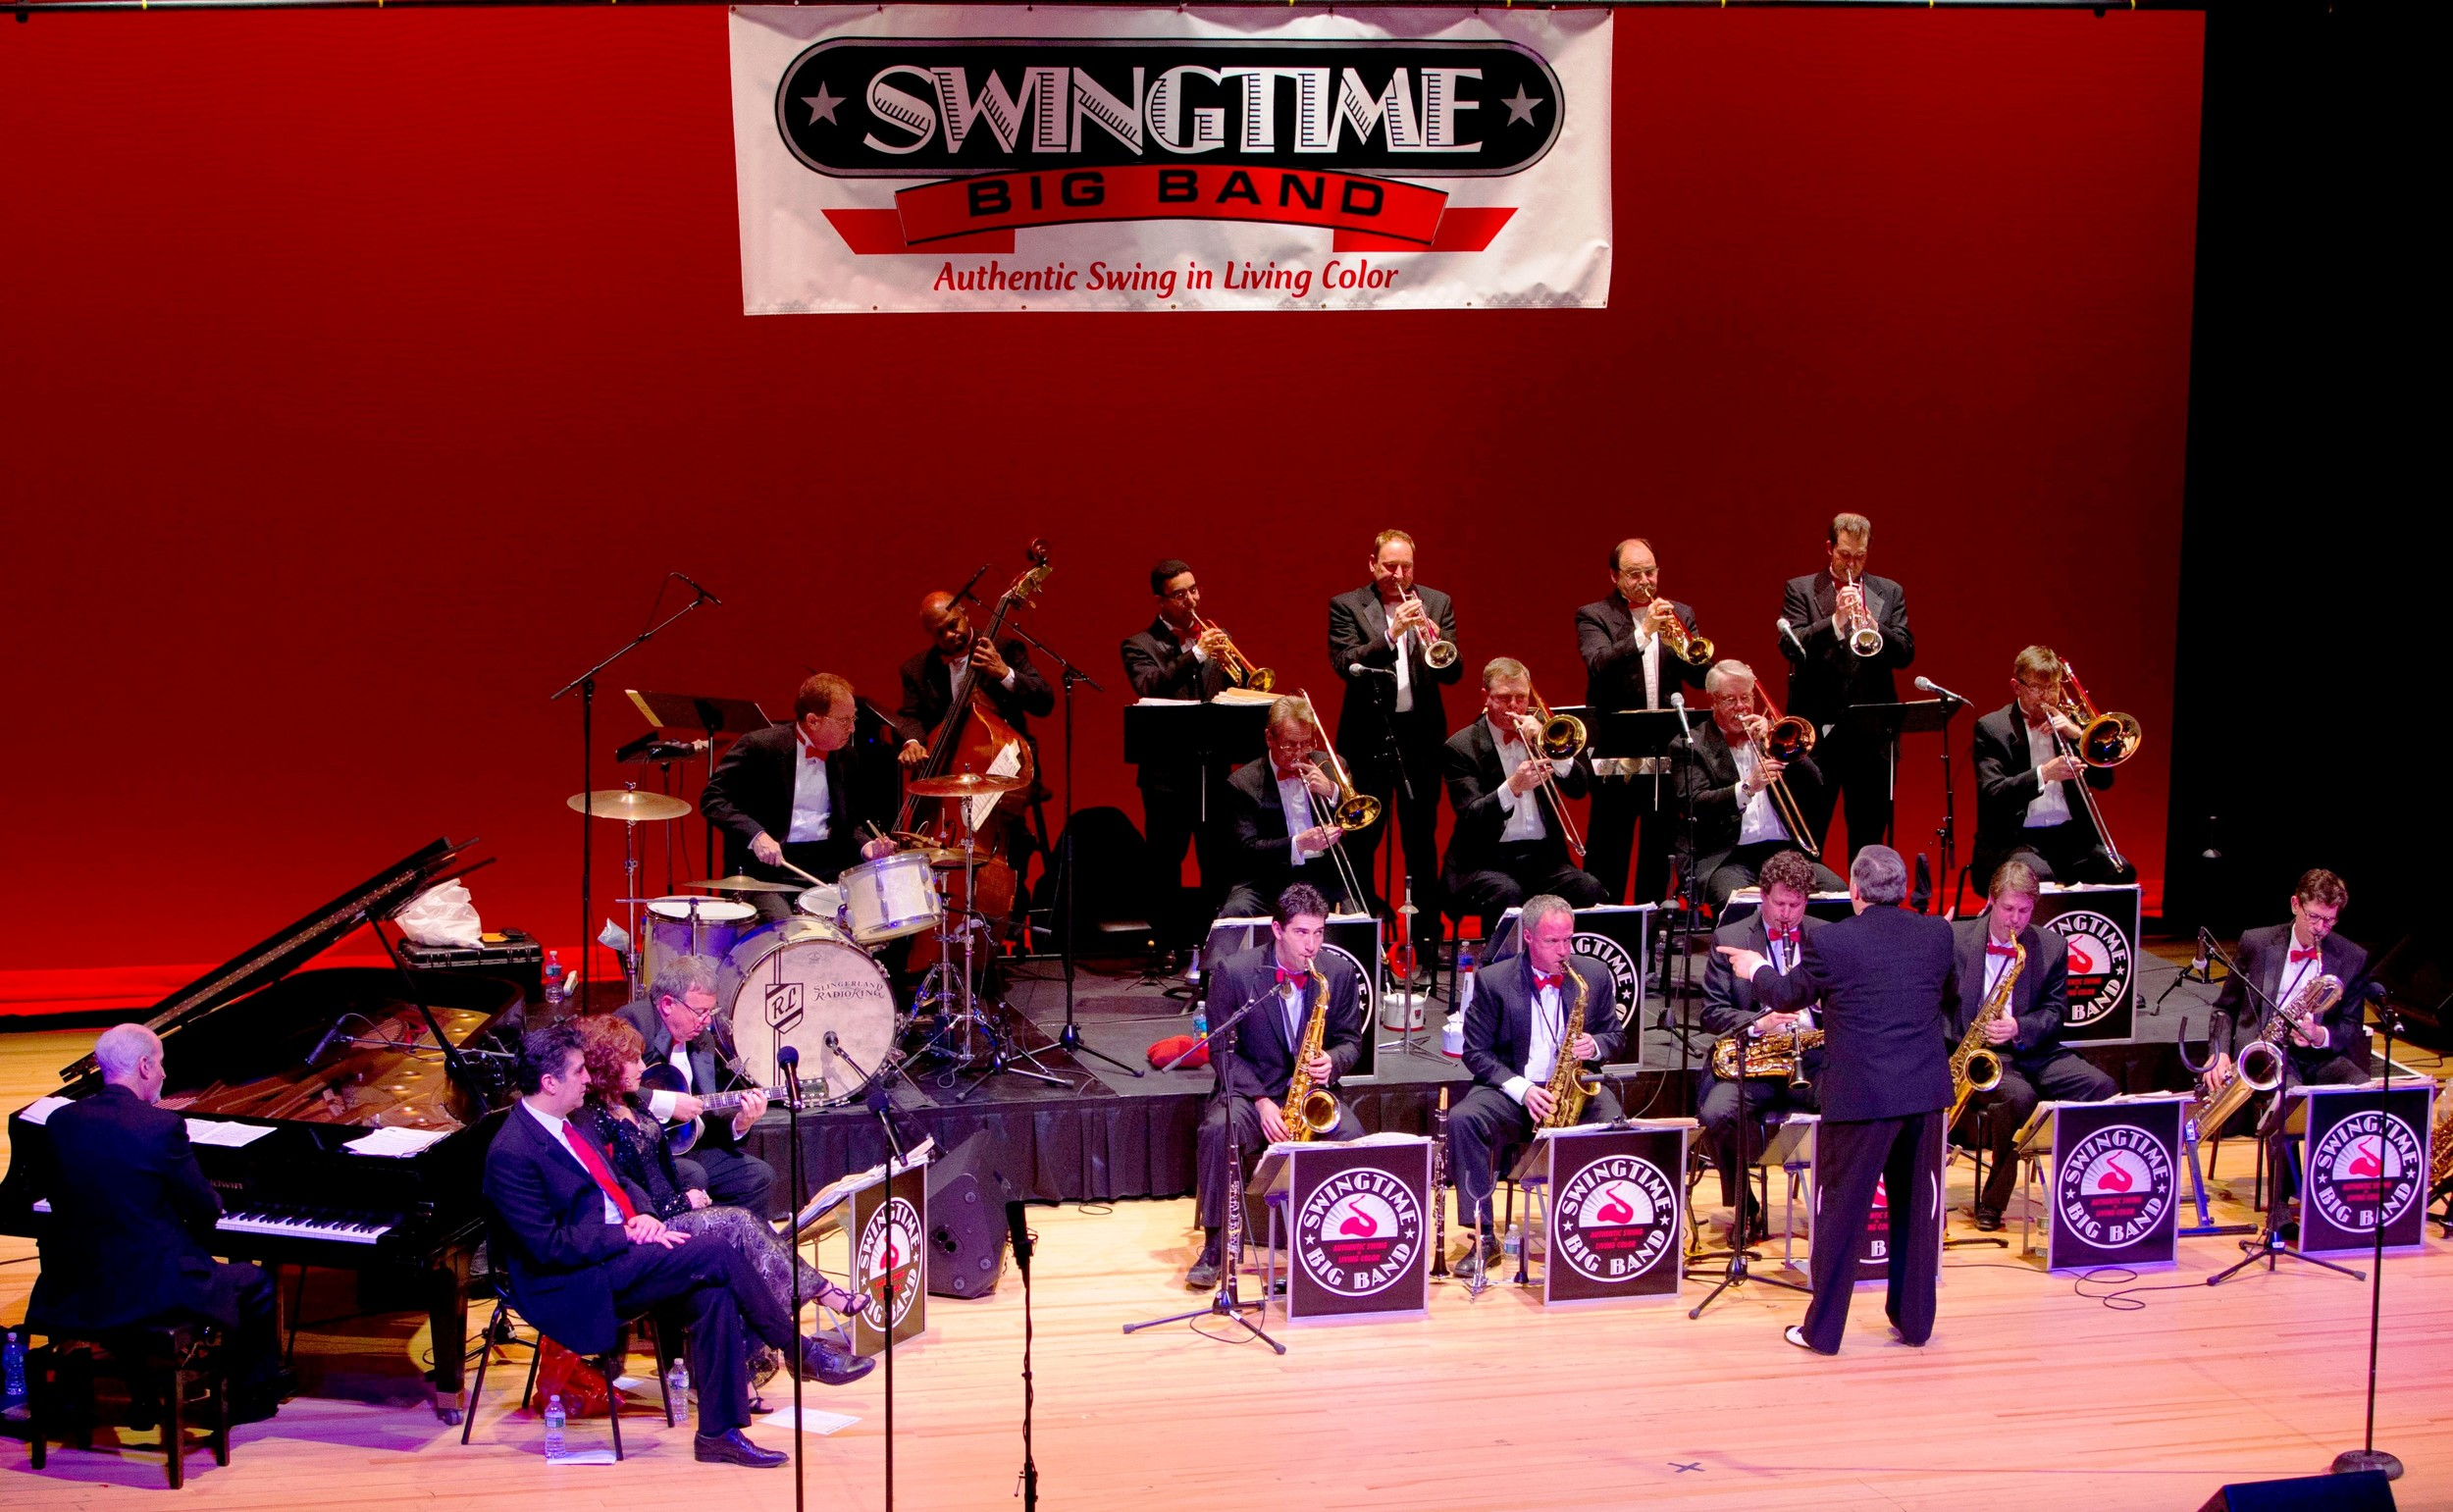 Swingtime Big Band will perform at Hall's Pond Park's gazebo on Sunday, July 23.